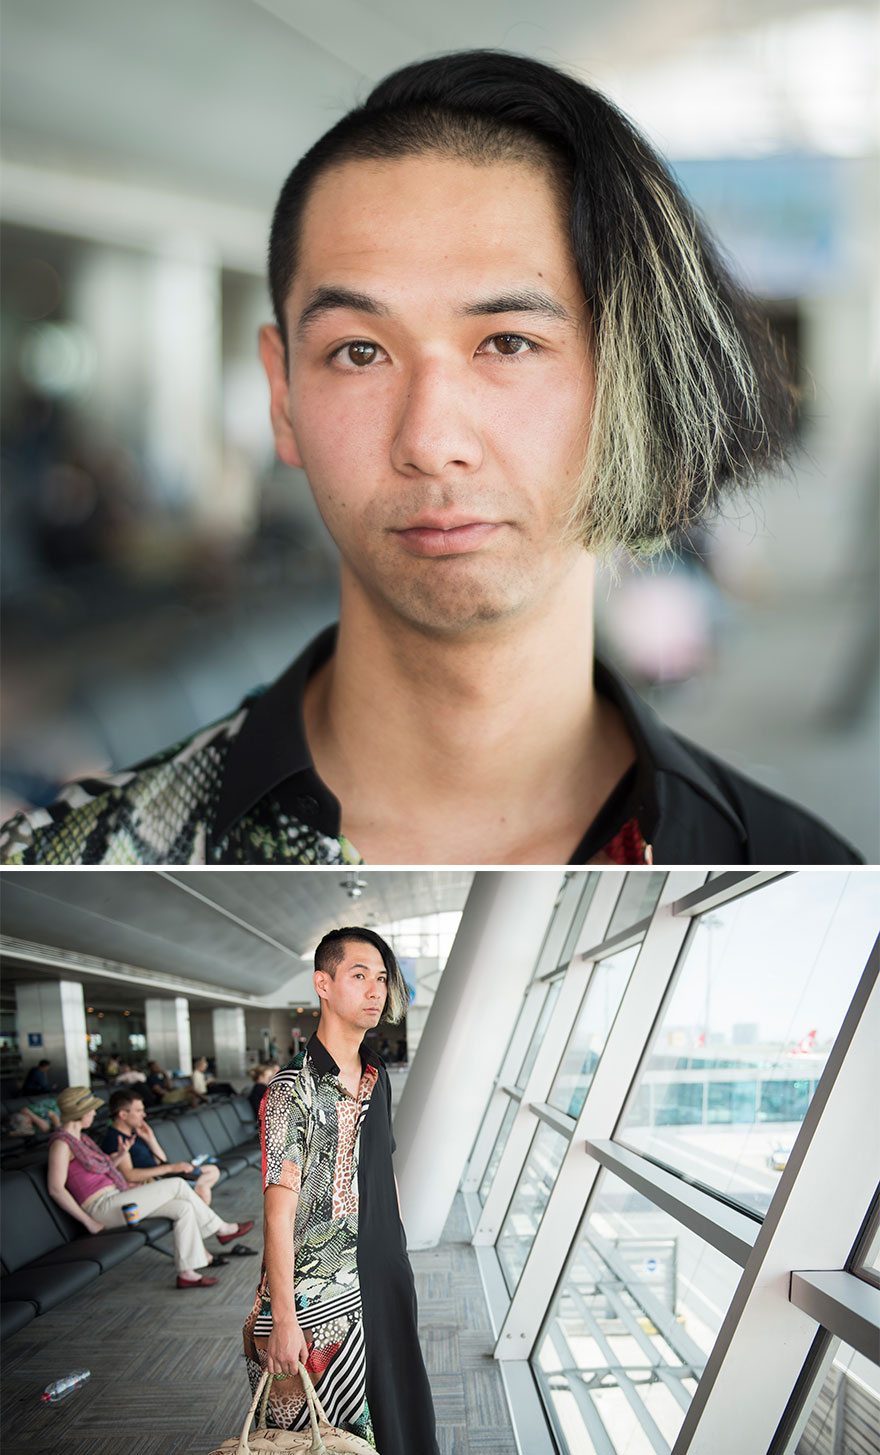 Photographer Captures Extraordinary People From All Across The World At Turkish Airport